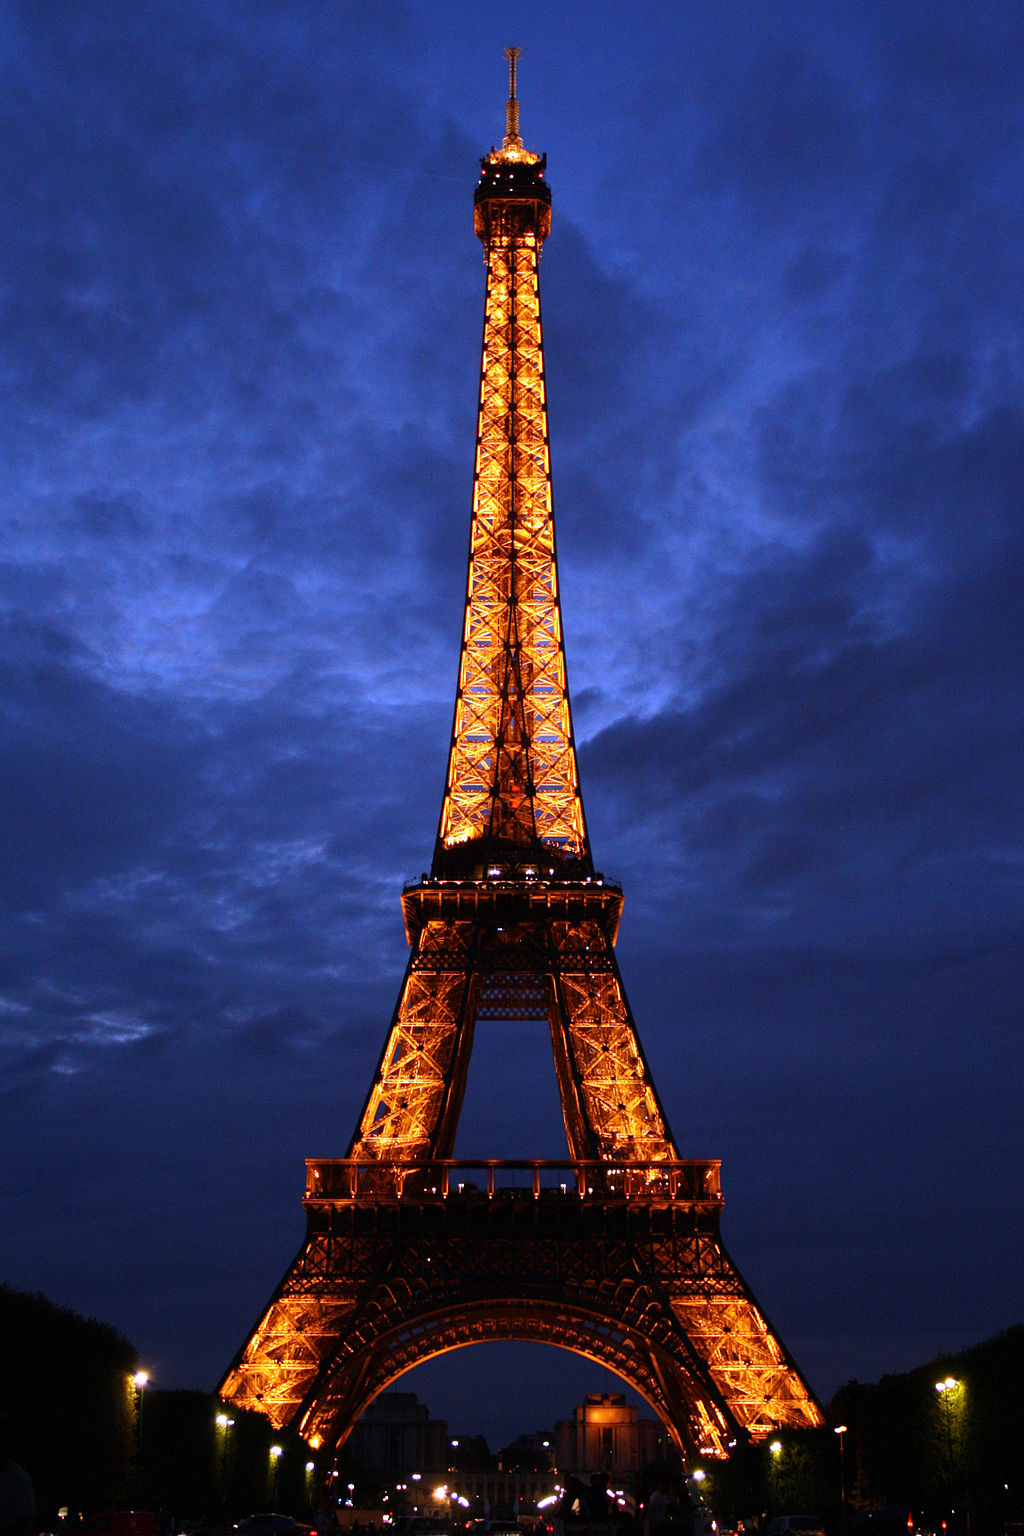 Eiffel Tower - Image by Matt Girling